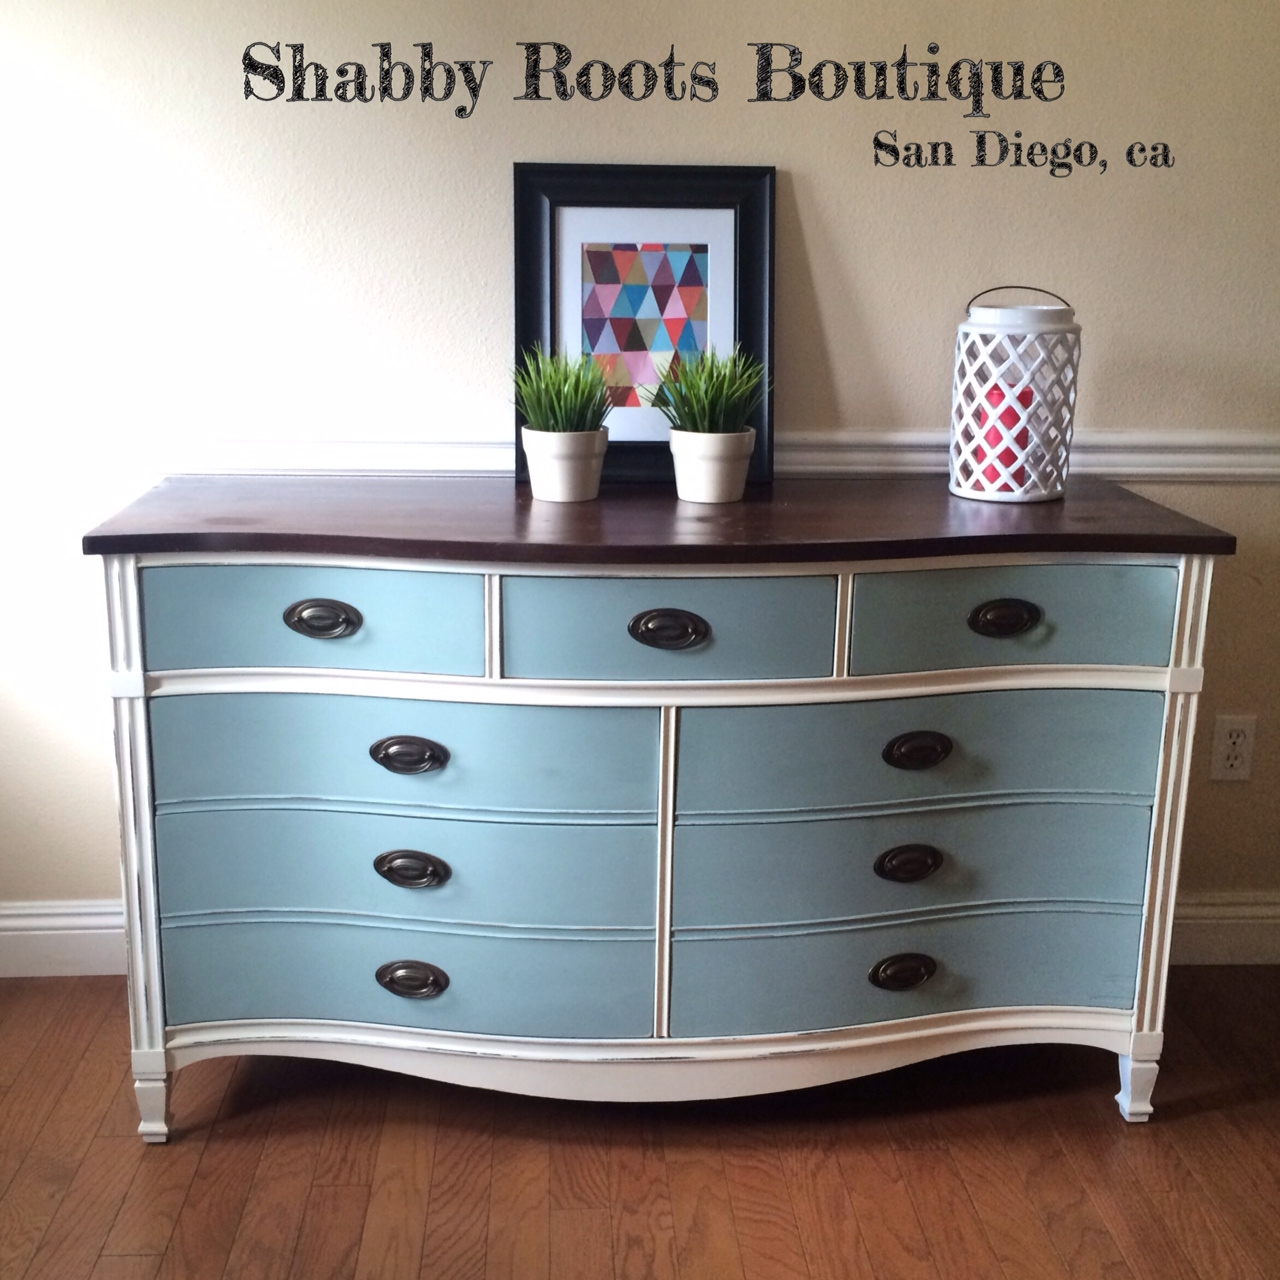 Shabby Chic Furniture Painting Wood